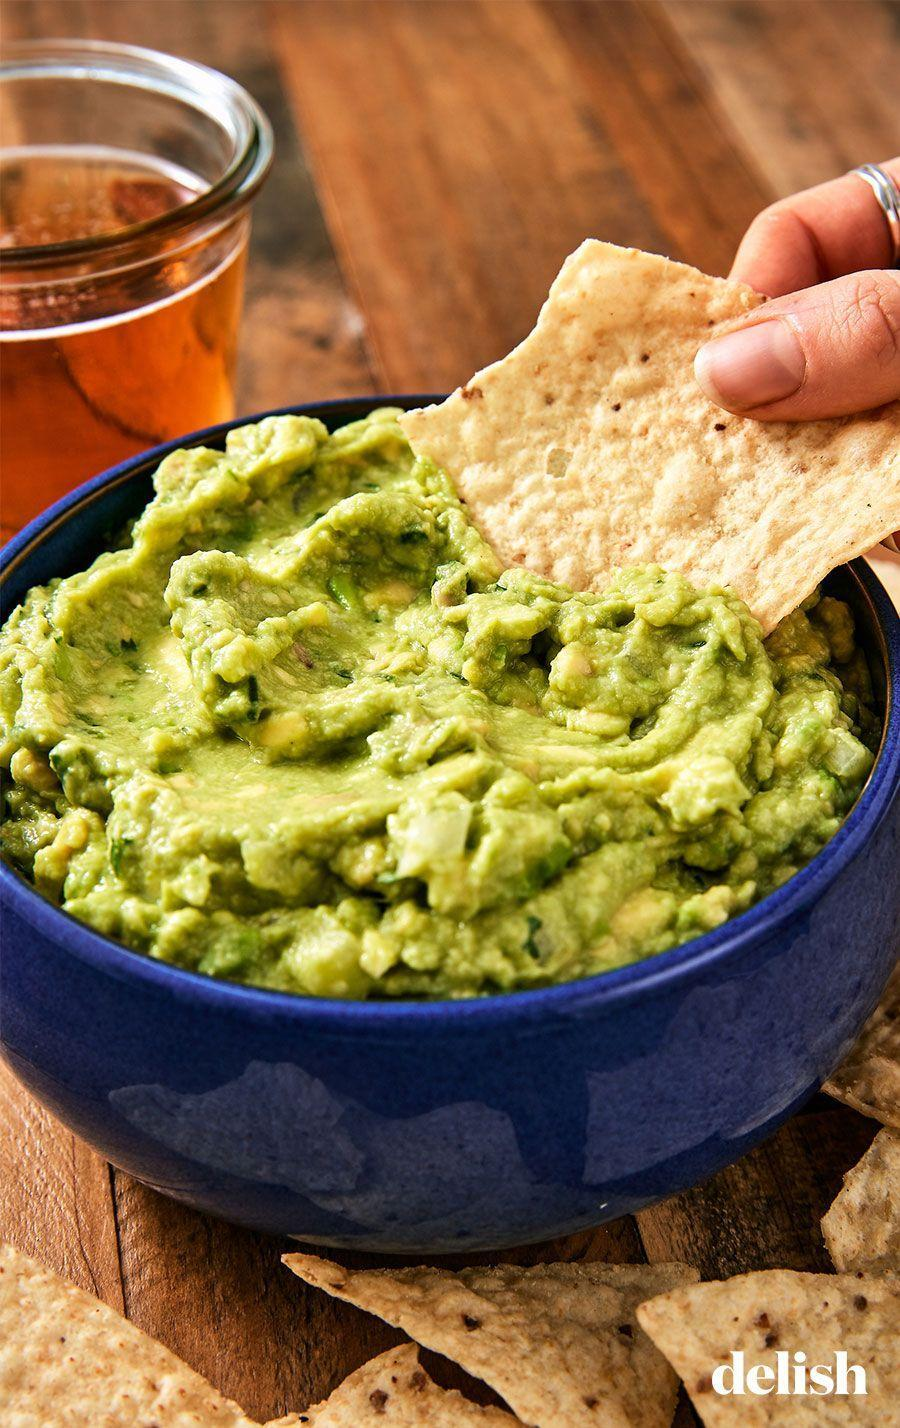 """<p>Sometimes, you just need a big bowl of guac in your life.</p><p>Get the recipe from <a href=""""https://www.delish.com/cooking/recipe-ideas/recipes/a45570/best-ever-guacamole-recipe/"""" rel=""""nofollow noopener"""" target=""""_blank"""" data-ylk=""""slk:Delish"""" class=""""link rapid-noclick-resp"""">Delish</a>.</p>"""